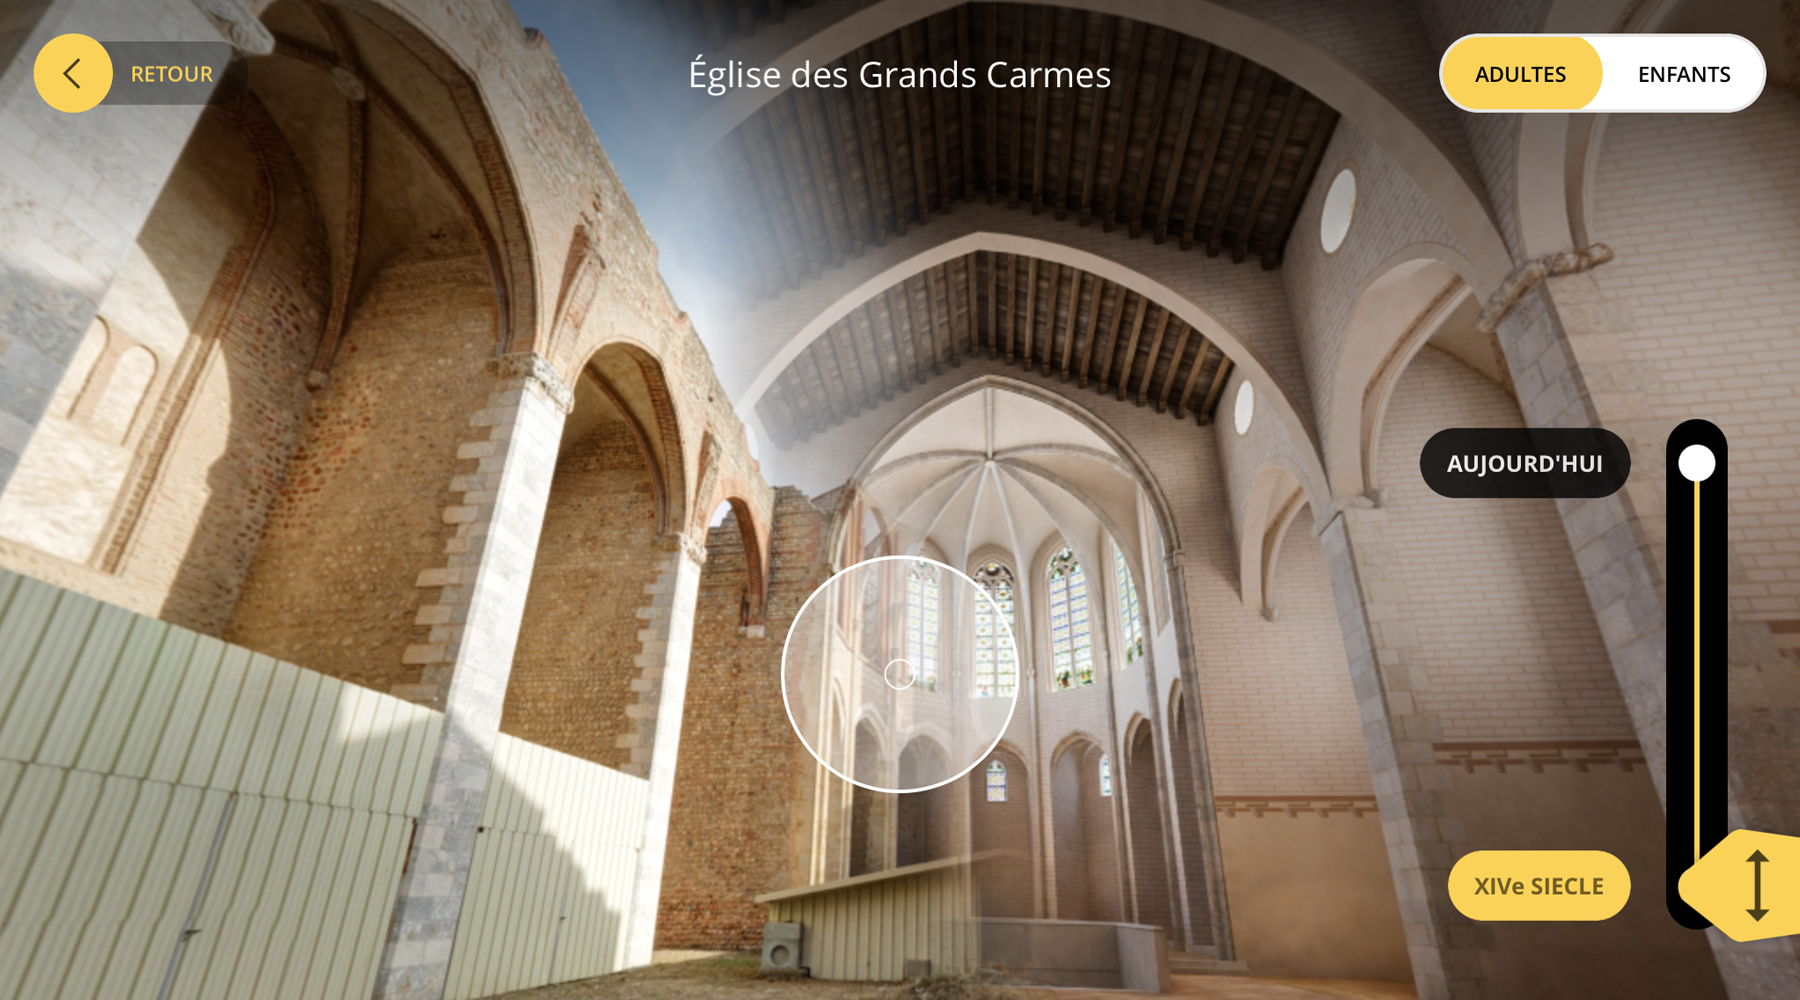 L'interface de l'application Perpignan 3D : l'église des Grands (...)